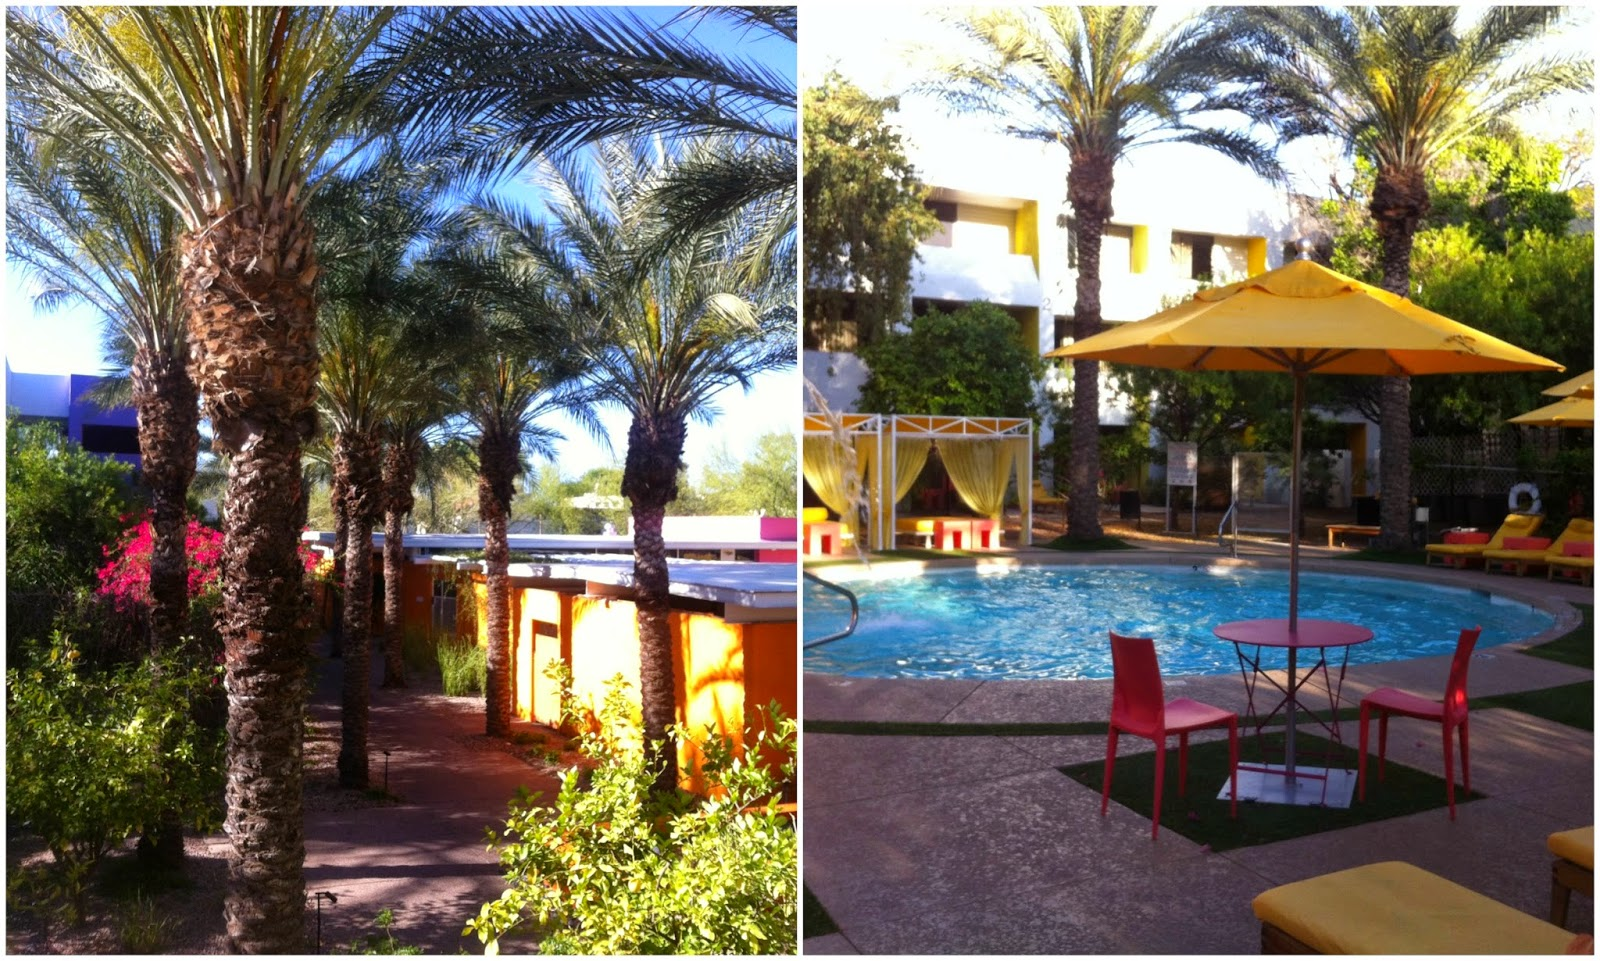 The Saguaro Hotel Scottsdale Arizona